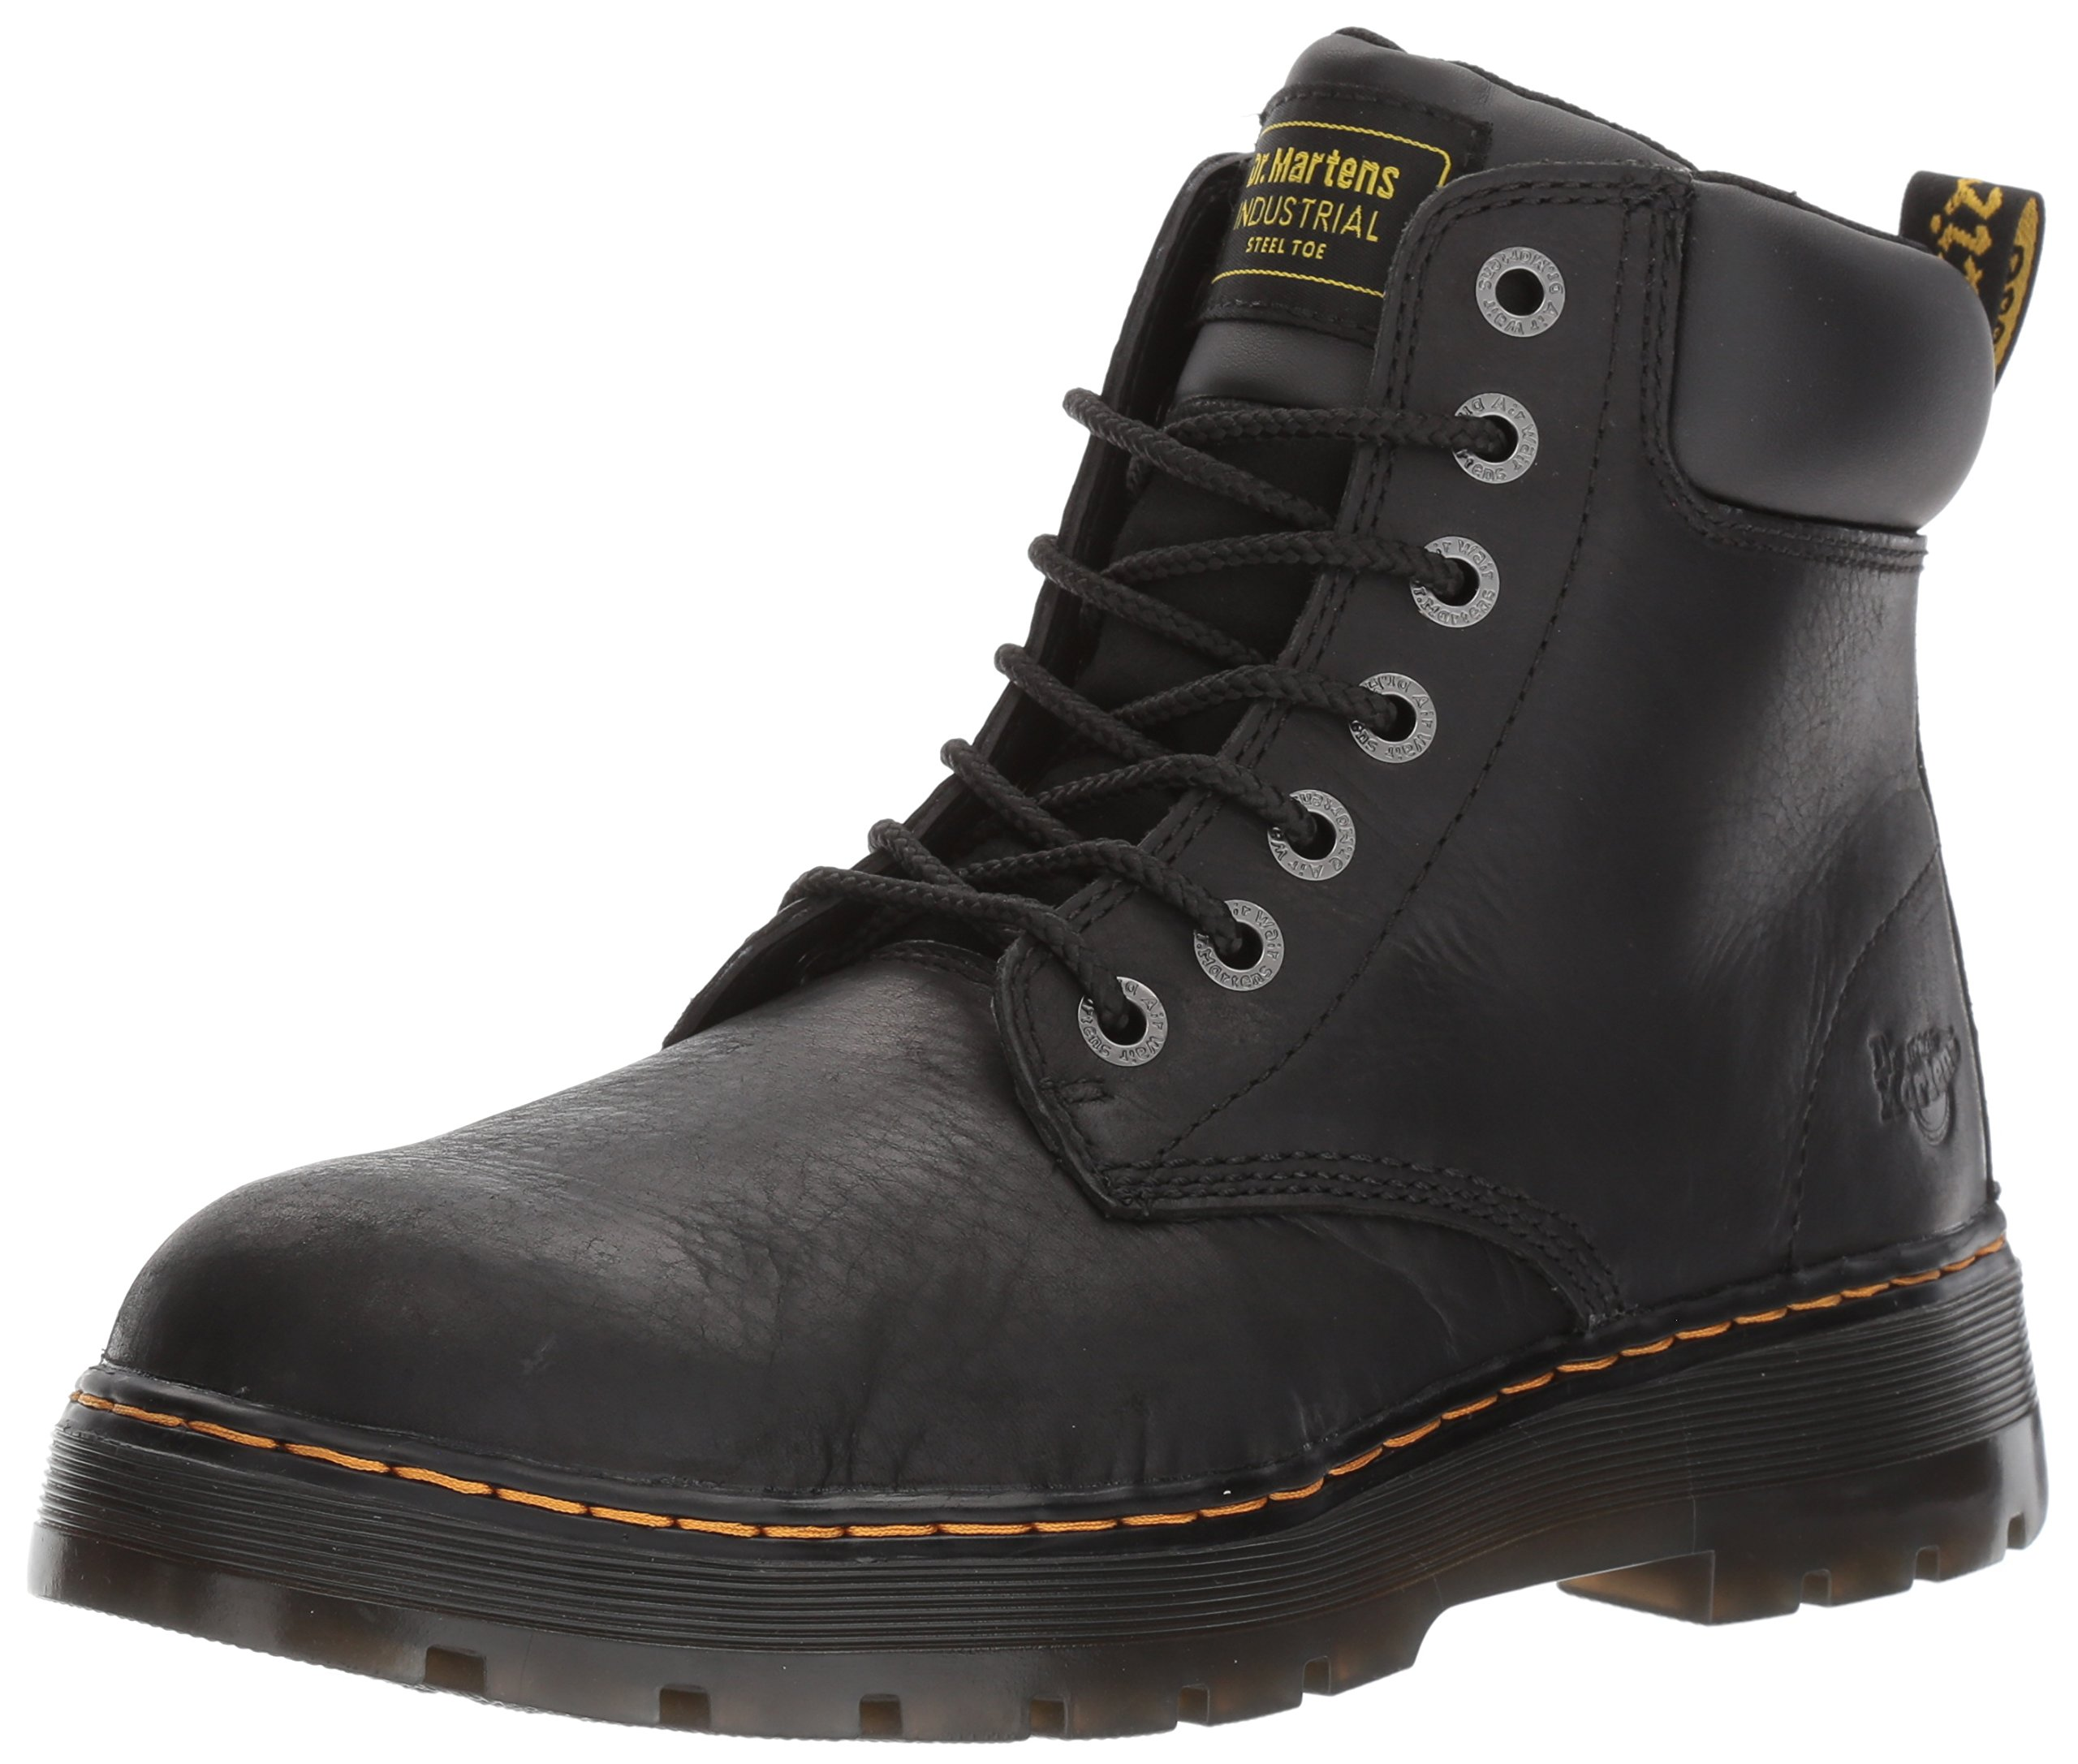 Dr. Martens Men's Winch 7-eye Lace-up Steel-toe Black Boot, Medium / 10 F(M) UK / 11 D(M) US by Dr. Martens